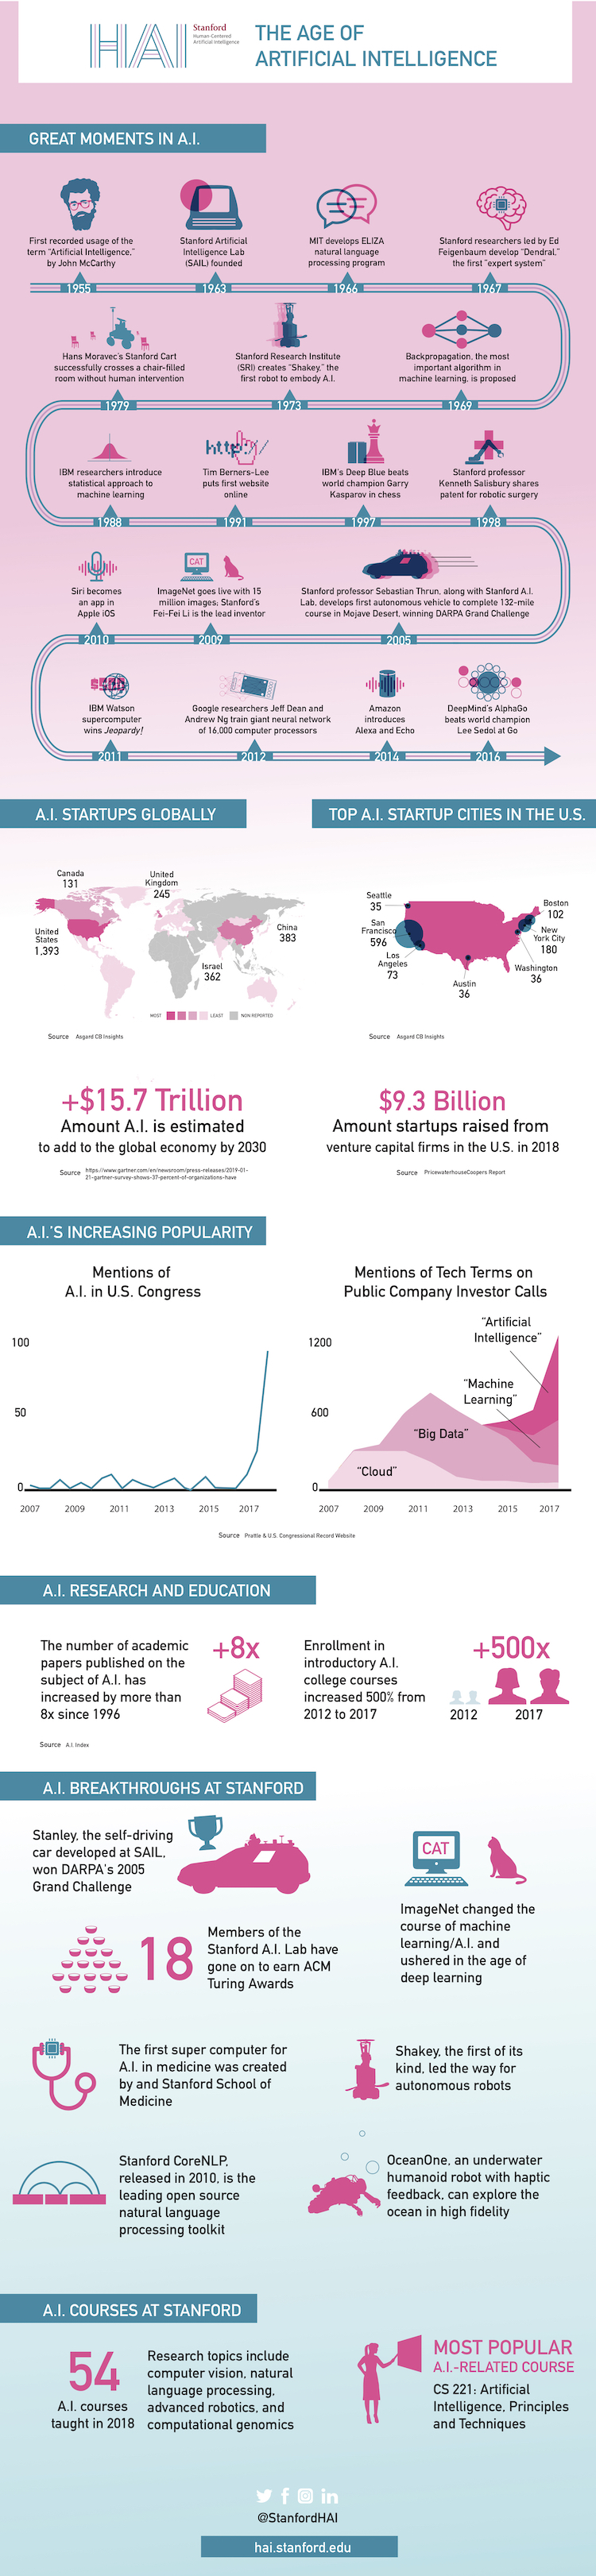 Age of AI Infographic